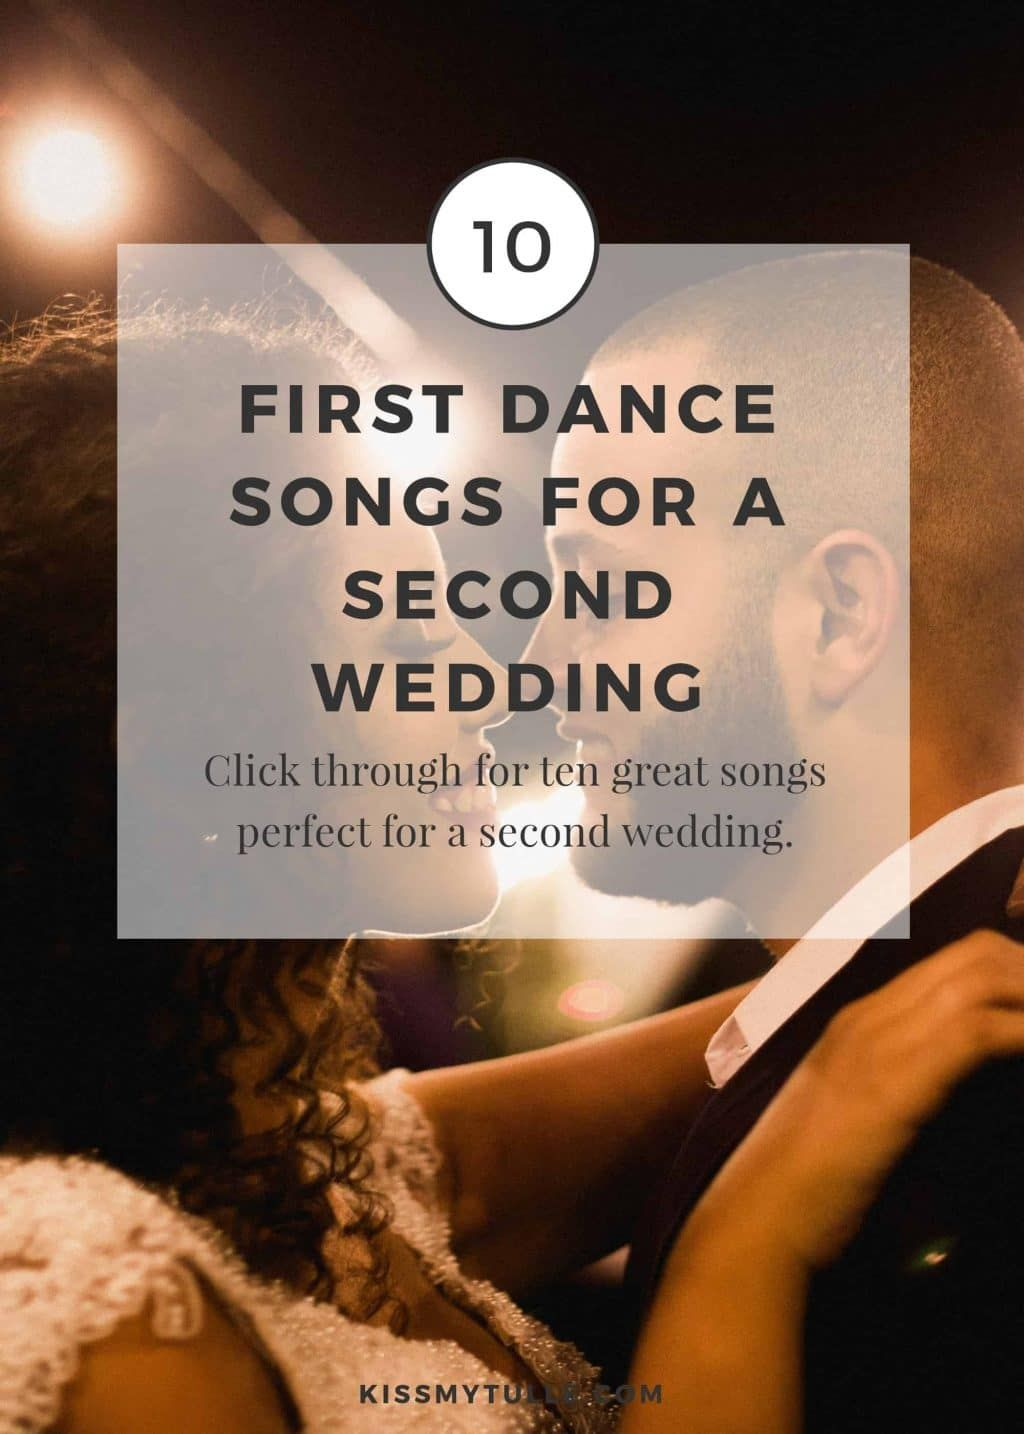 10 First Dance Songs for a Second Wedding Kiss My Tulle